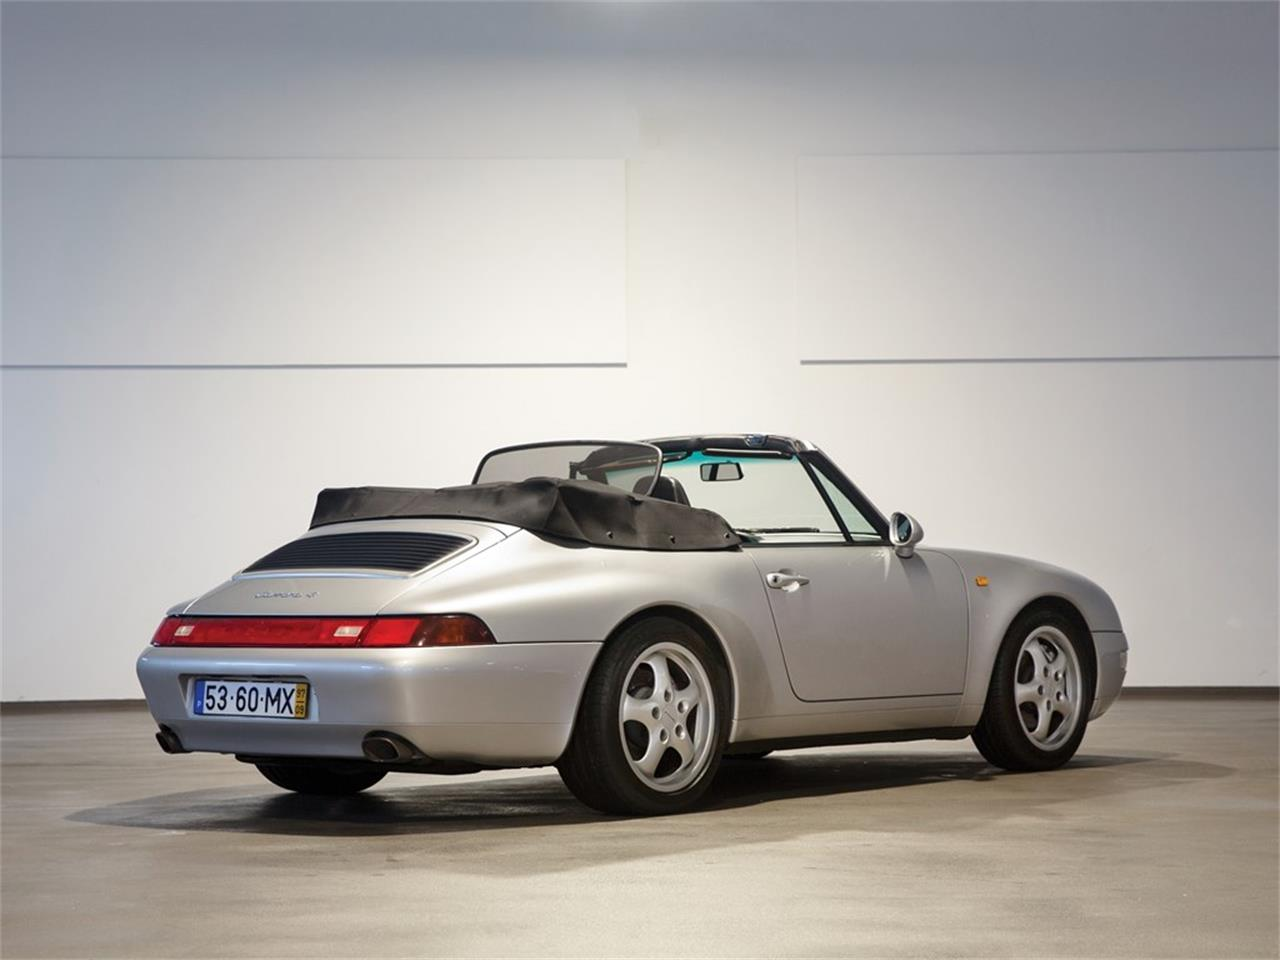 1998 Porsche 911 Carrera 4 Cabriolet (CC-1249702) for sale in Monteira,